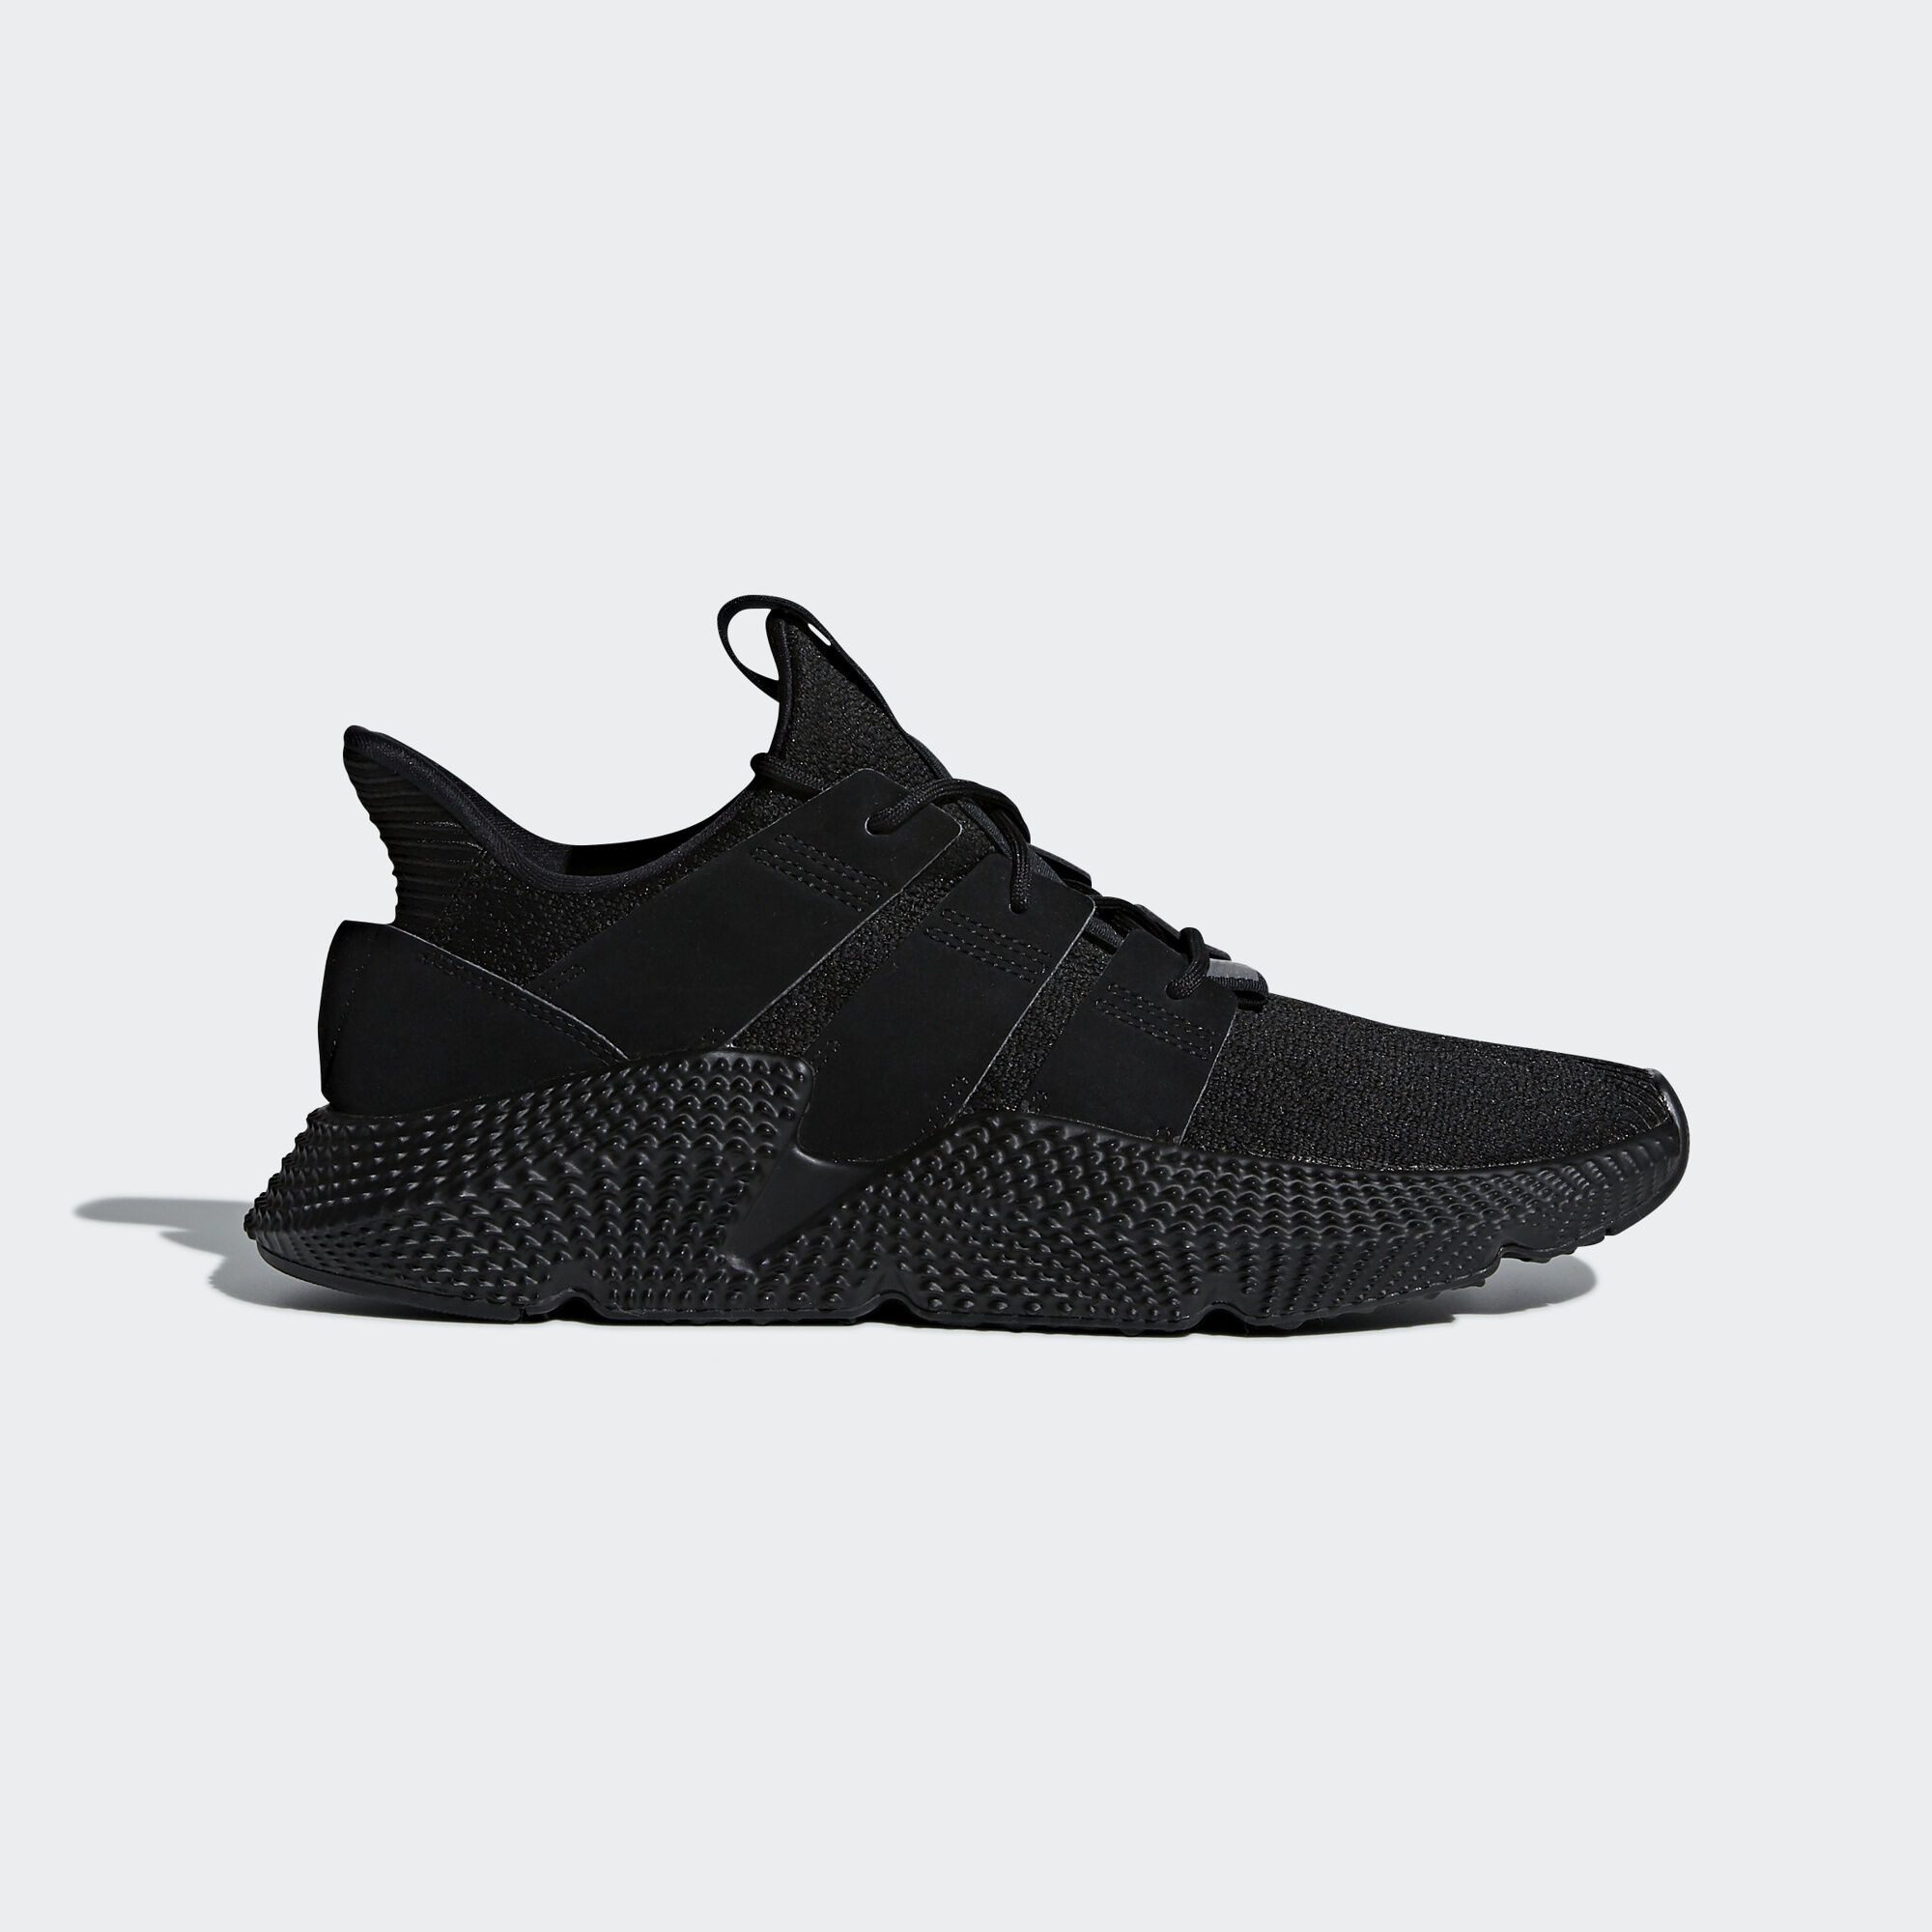 East Asiamiddle Prophere Adidas Shoes Black qwC4tPgx